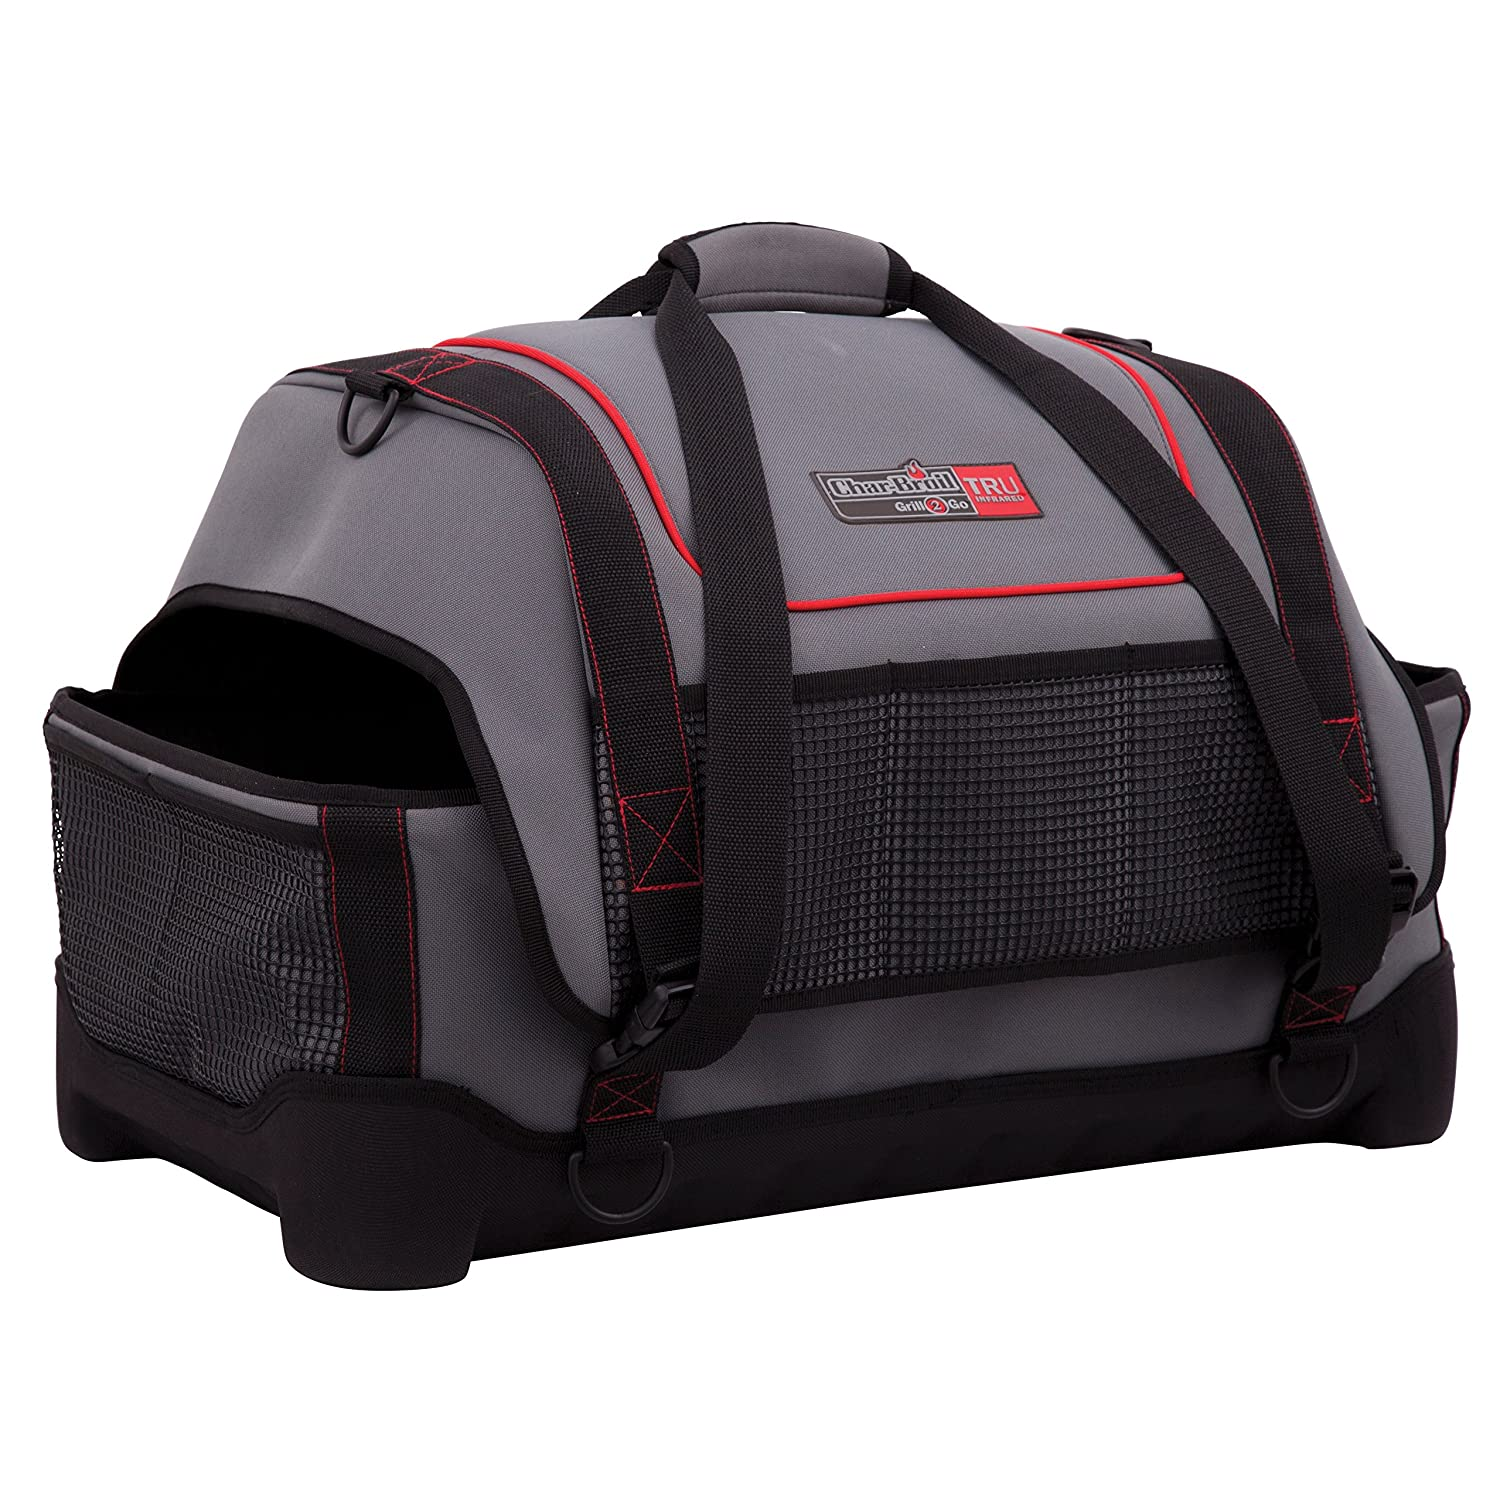 Char-Broil 140 692 - X200 Grill2Go Portable Gas Grill Carry Bag.